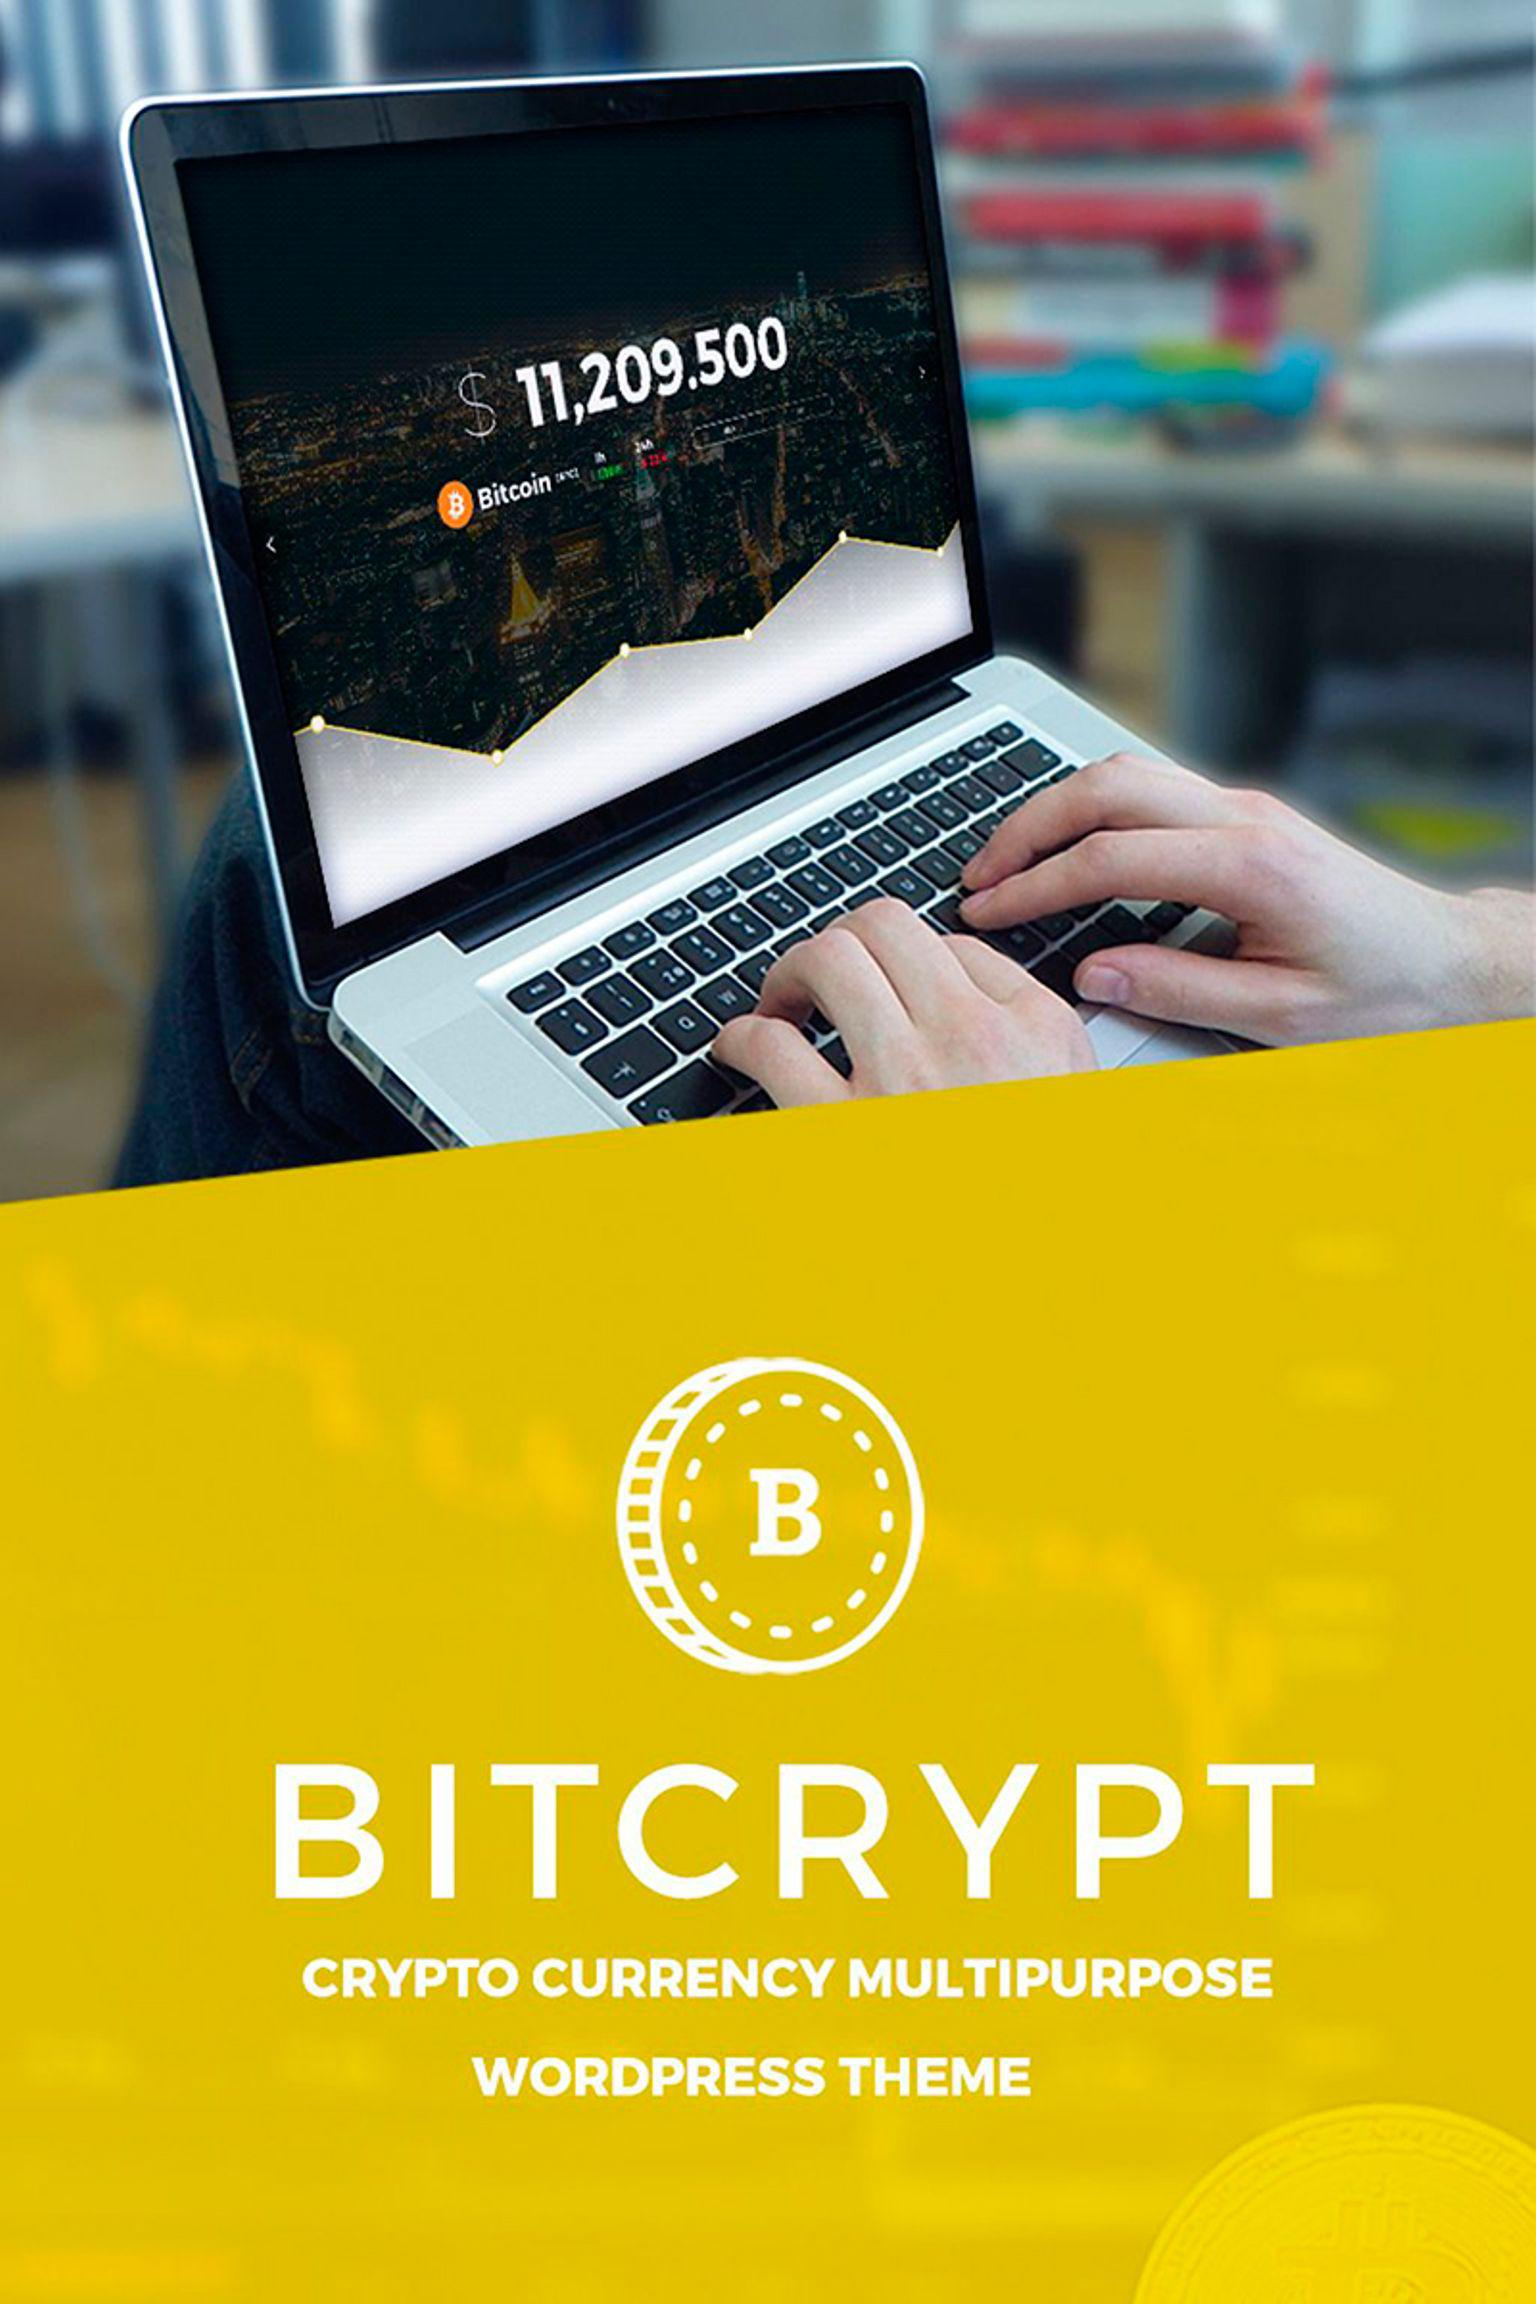 Bitcrypt wordpress theme